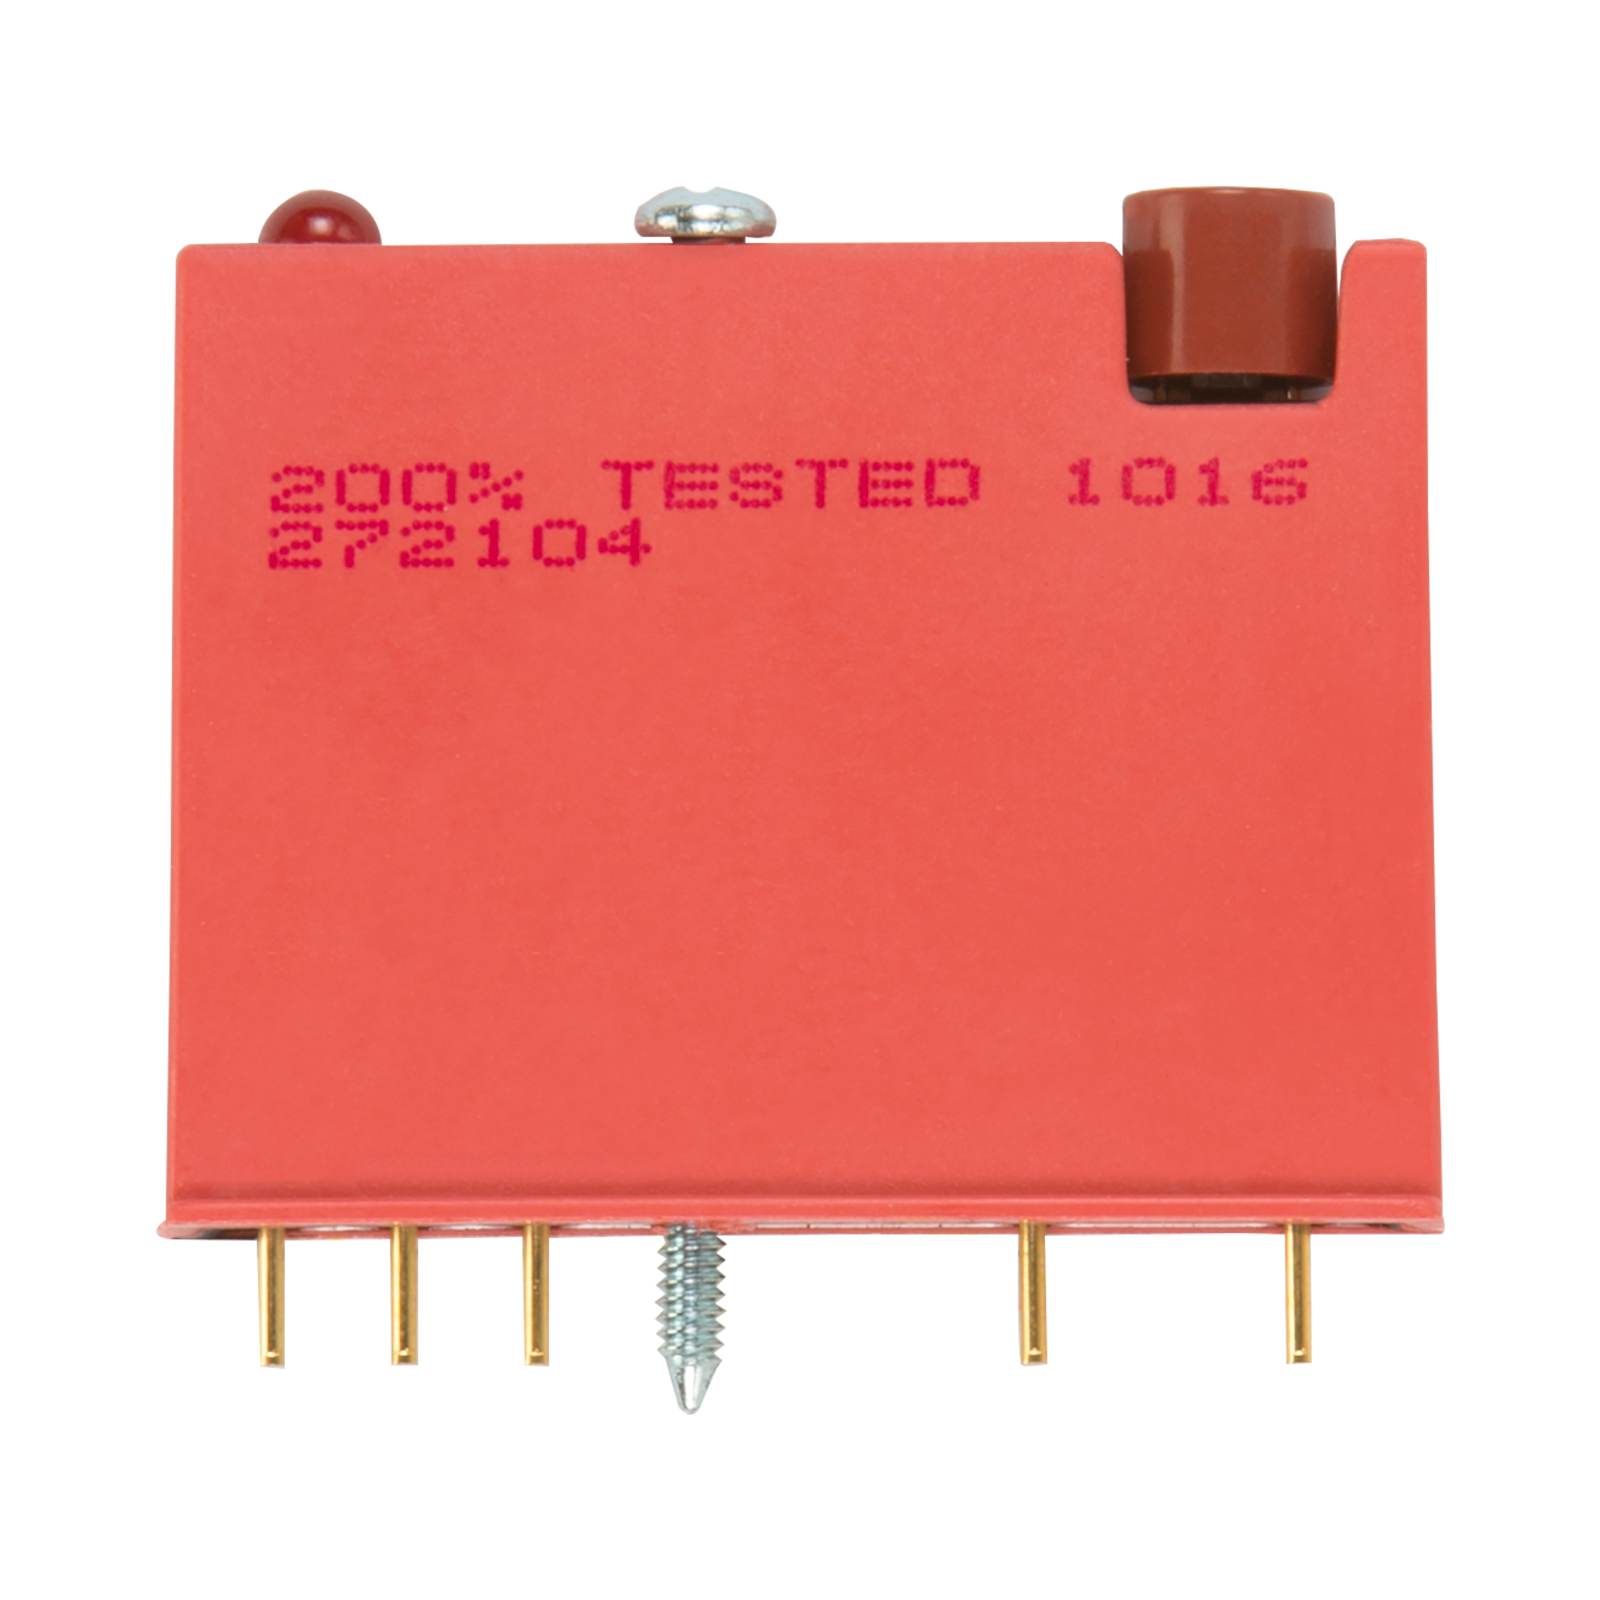 Opto22 G4odc5r5 G4 Reed Relay Output 5 Vdc Logic Normally Closed Spst Previous